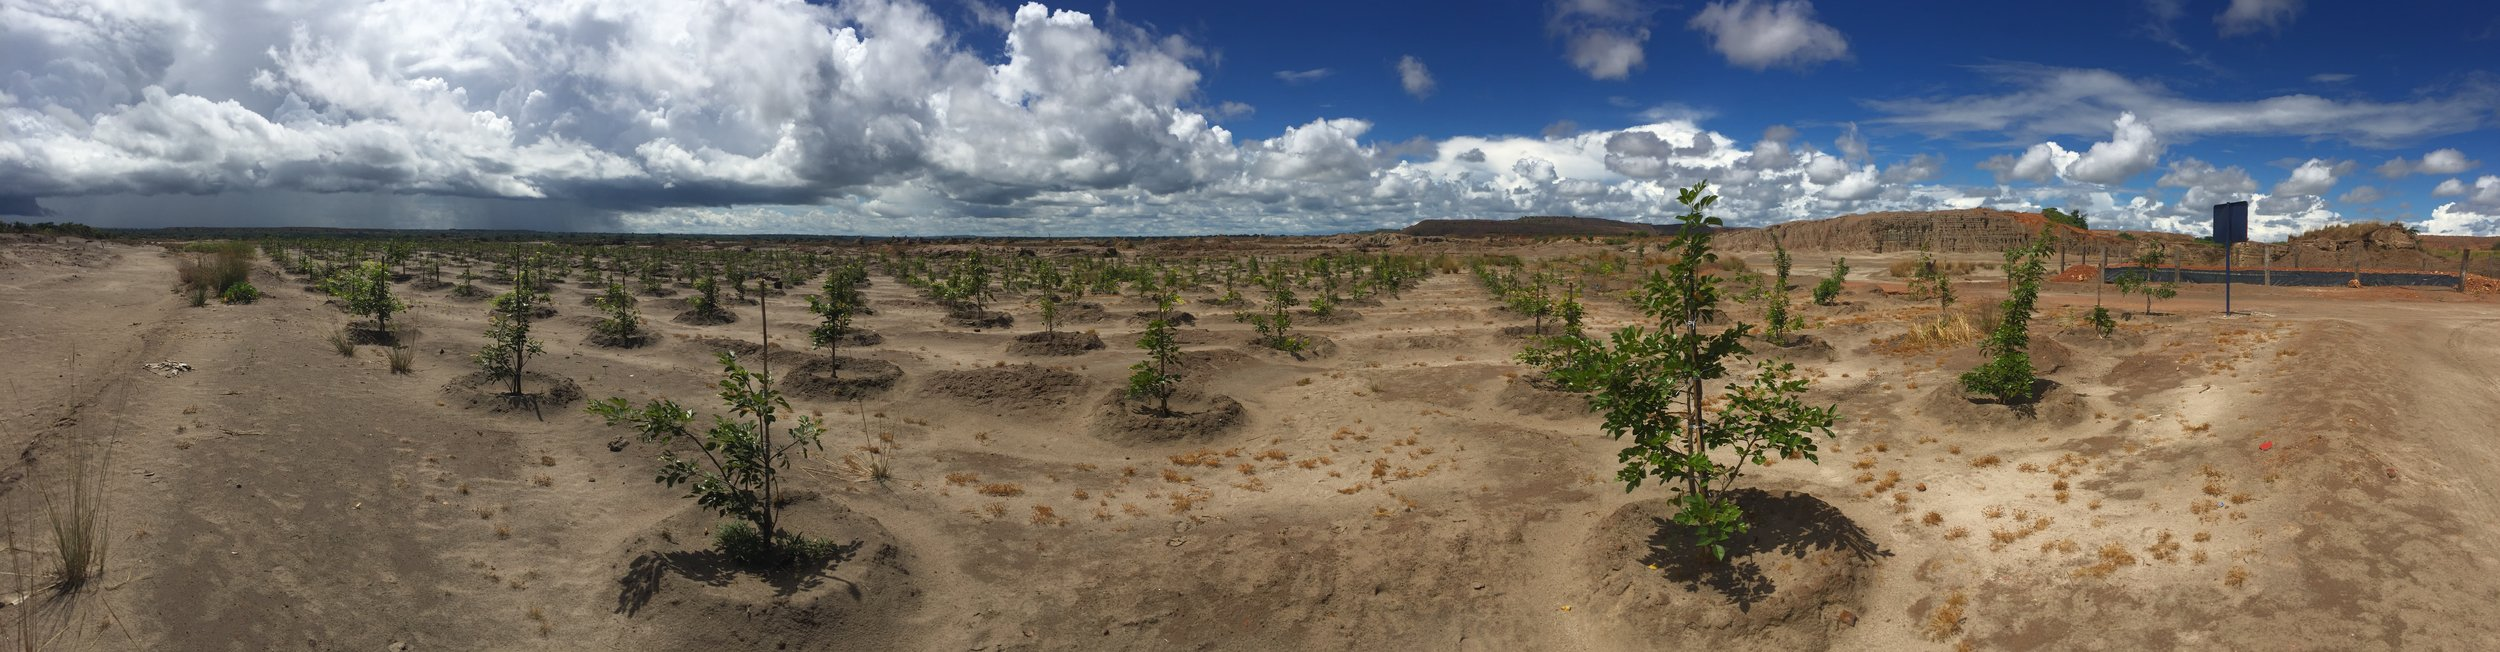 2 year old pongamia at chingola copper tailings dam, copperbelt, zambia:erosion is stopped, vegetation is colonising around the pongamia plant nurses.